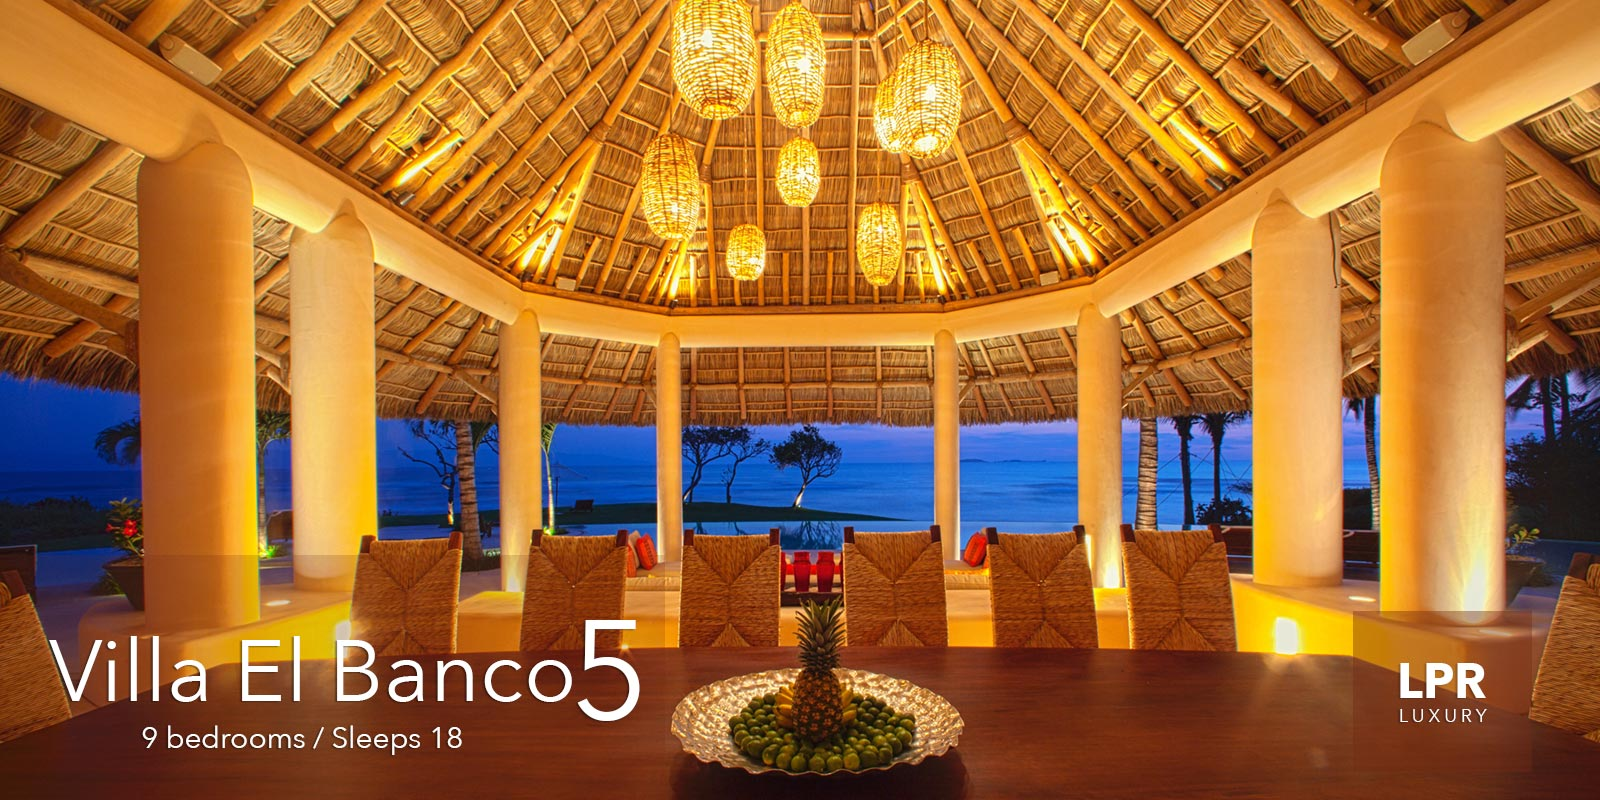 Villa El Banco 5 - Ultra Luxury Vacation Rental Villain Punta de Mita, Mexico